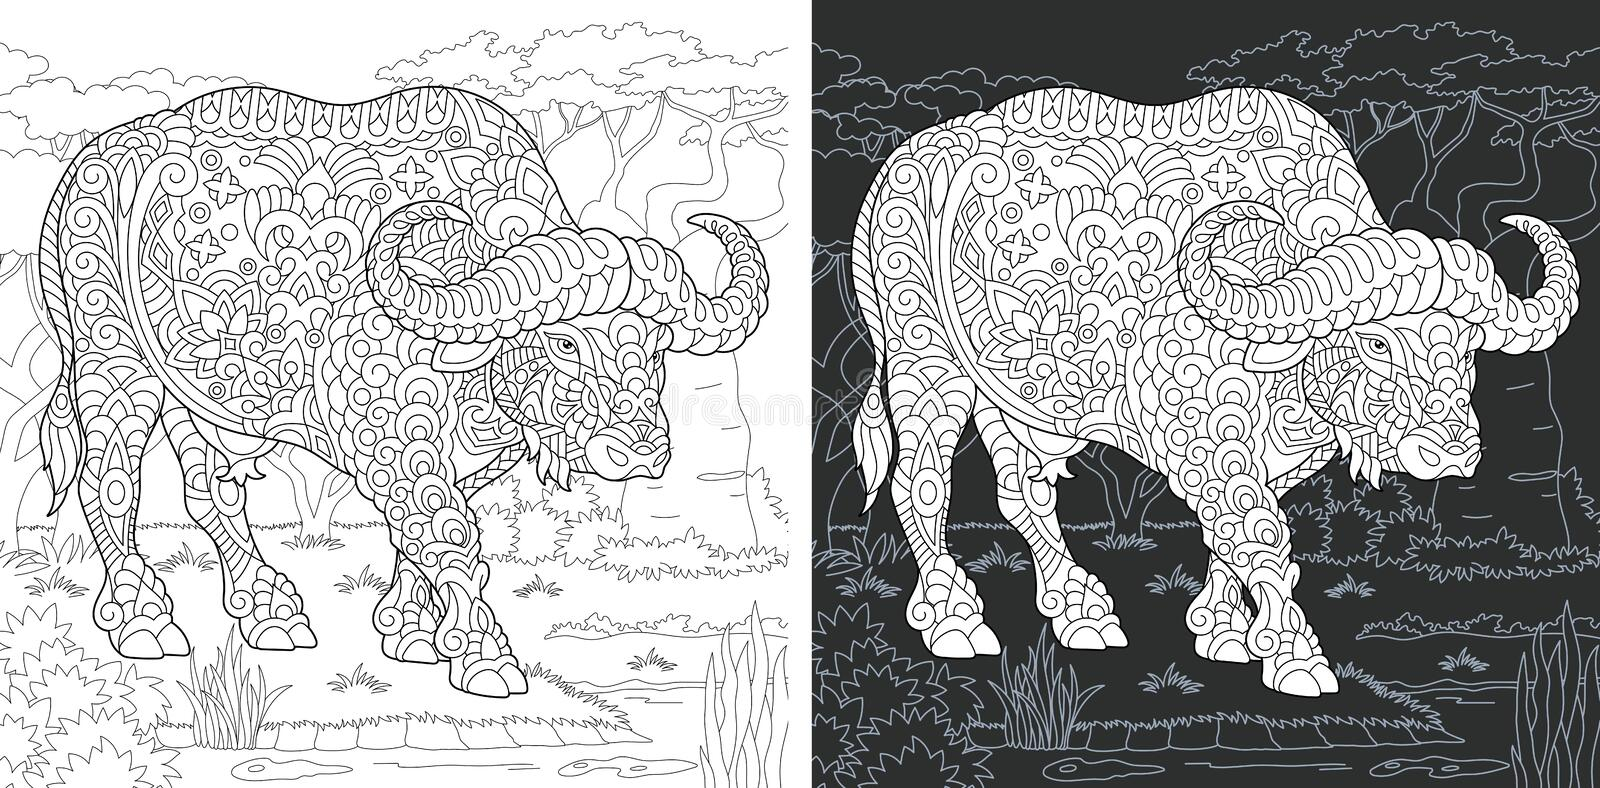 Coloring page with buffalo. Coloring Page. Coloring Book. Colouring picture with Buffalo drawn in zentangle style. Antistress freehand sketch drawing. Vector stock illustration